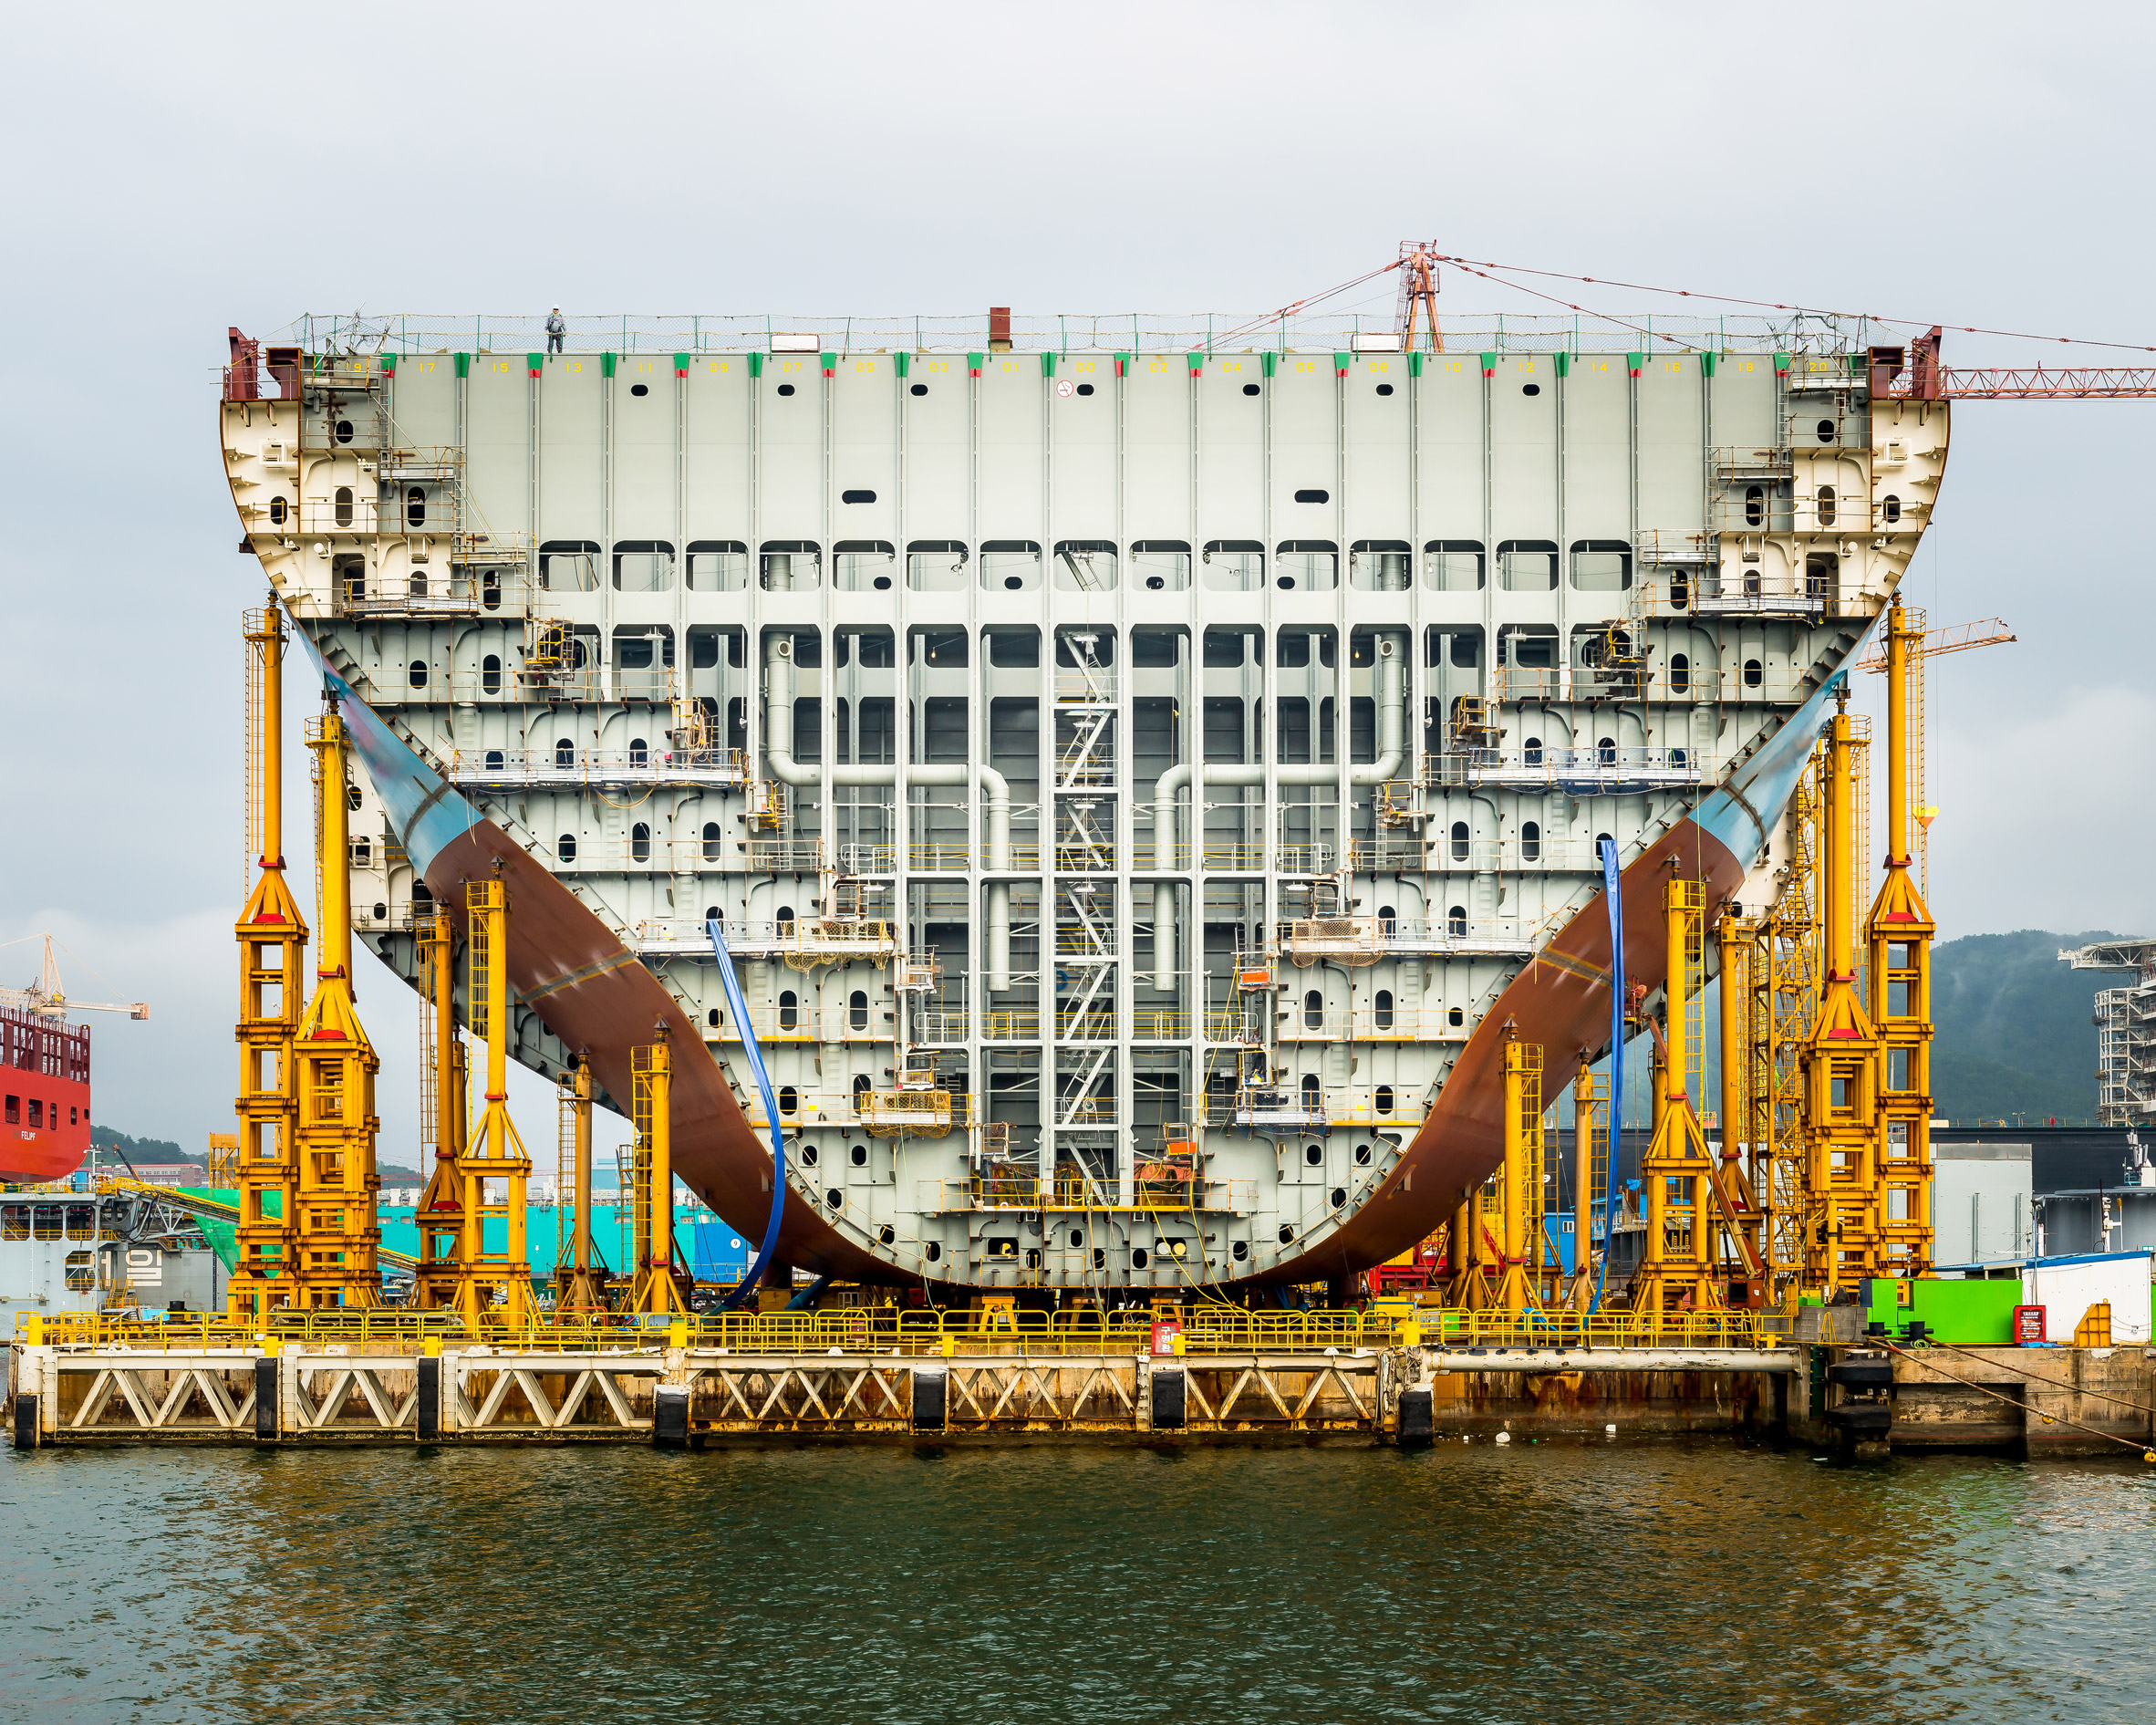 Alastair Philip Wiper, Maersk Triple E container ship under construction, Daewoo Shipbuilding & Marine Engineering (DSME), South Korea